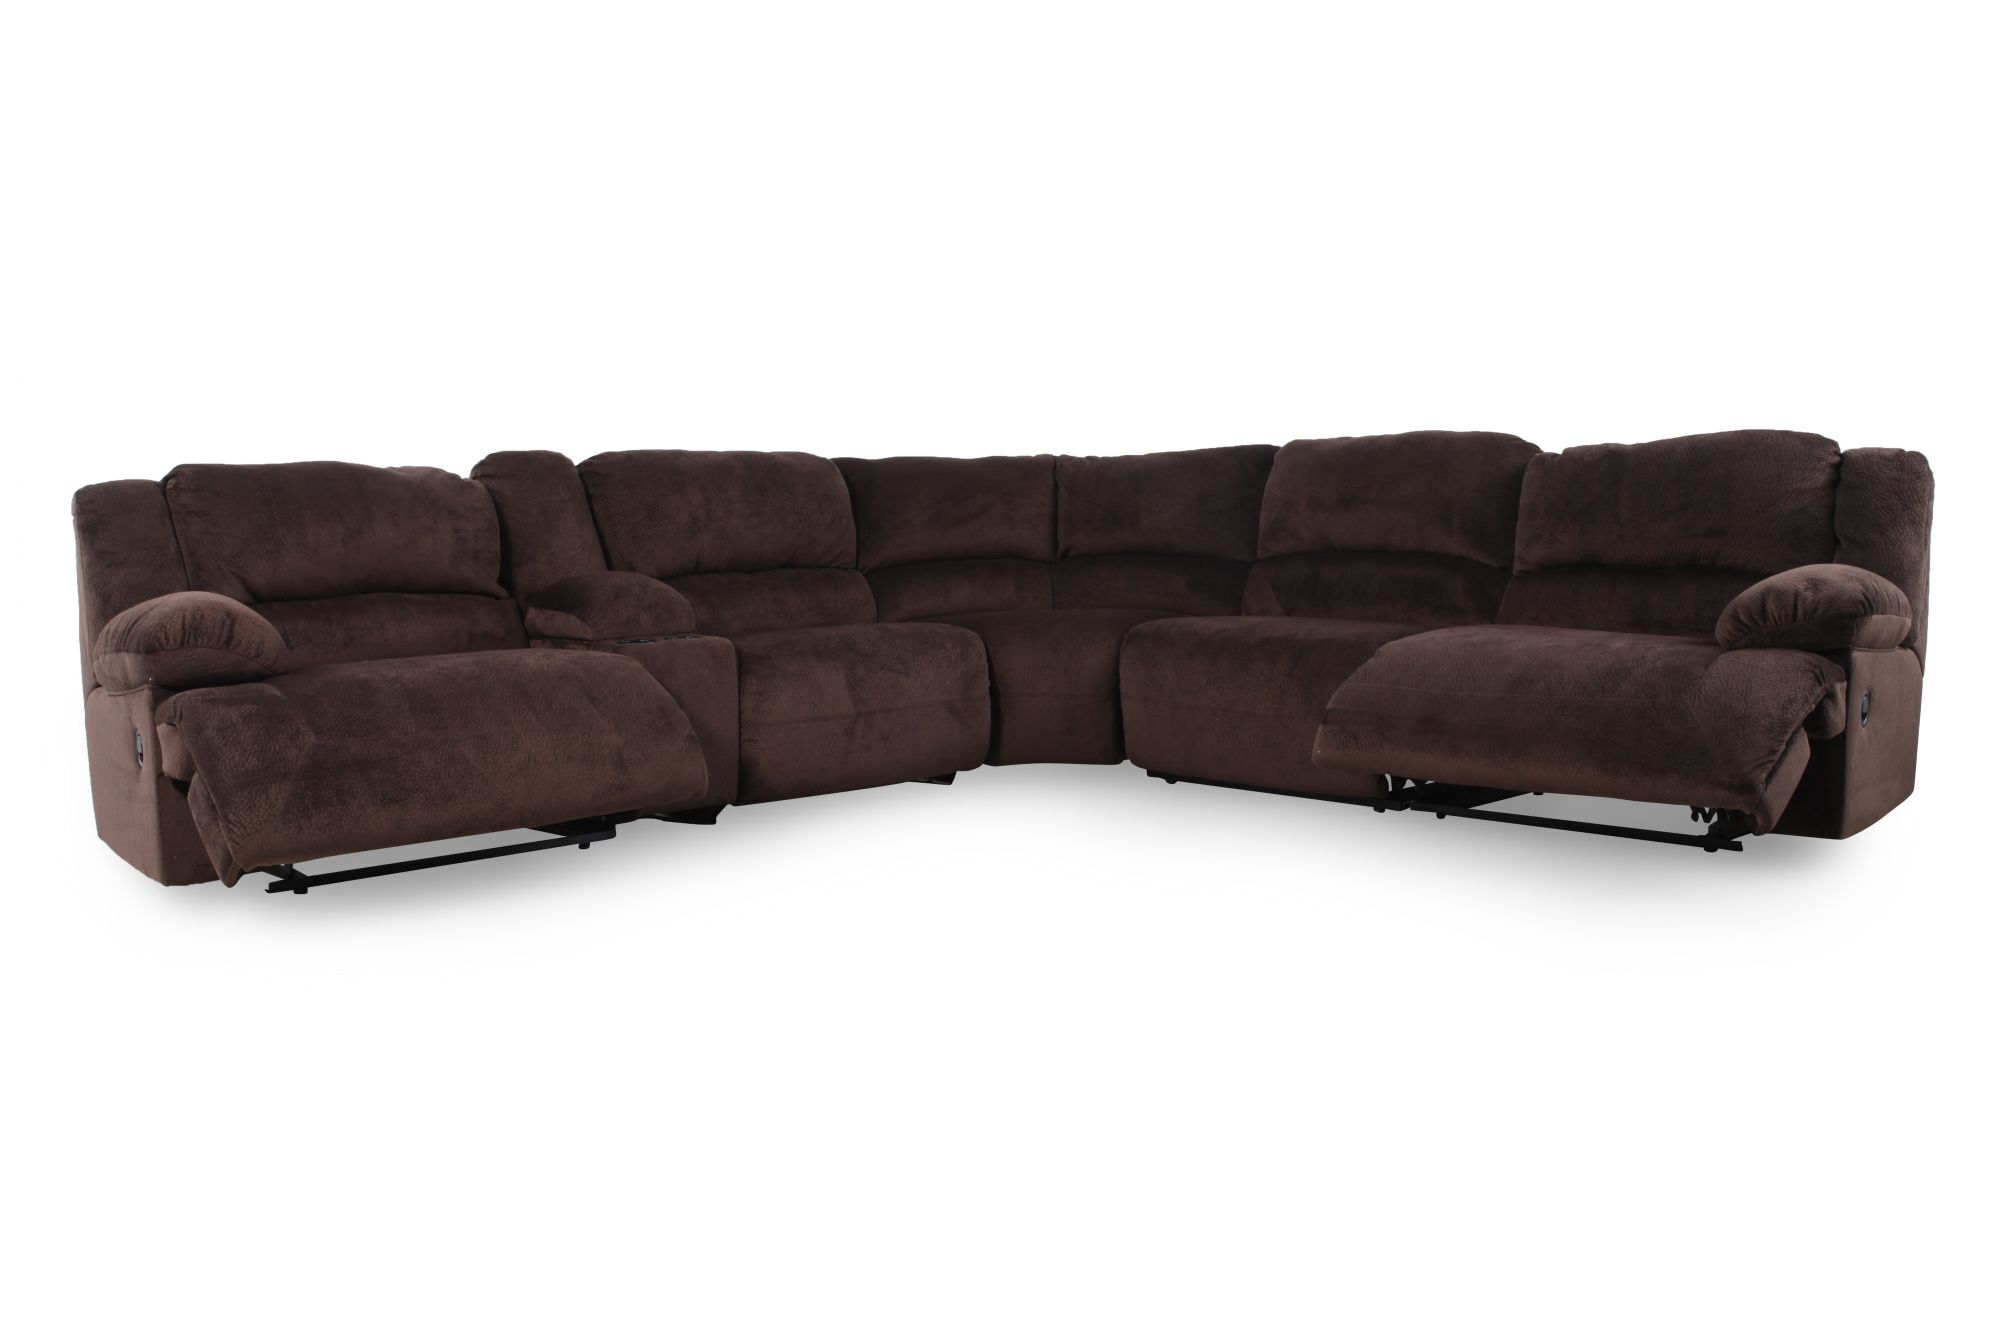 corey chocolate brown sectional sofa slate grey reclining microfiber 131 5 quot in mathis